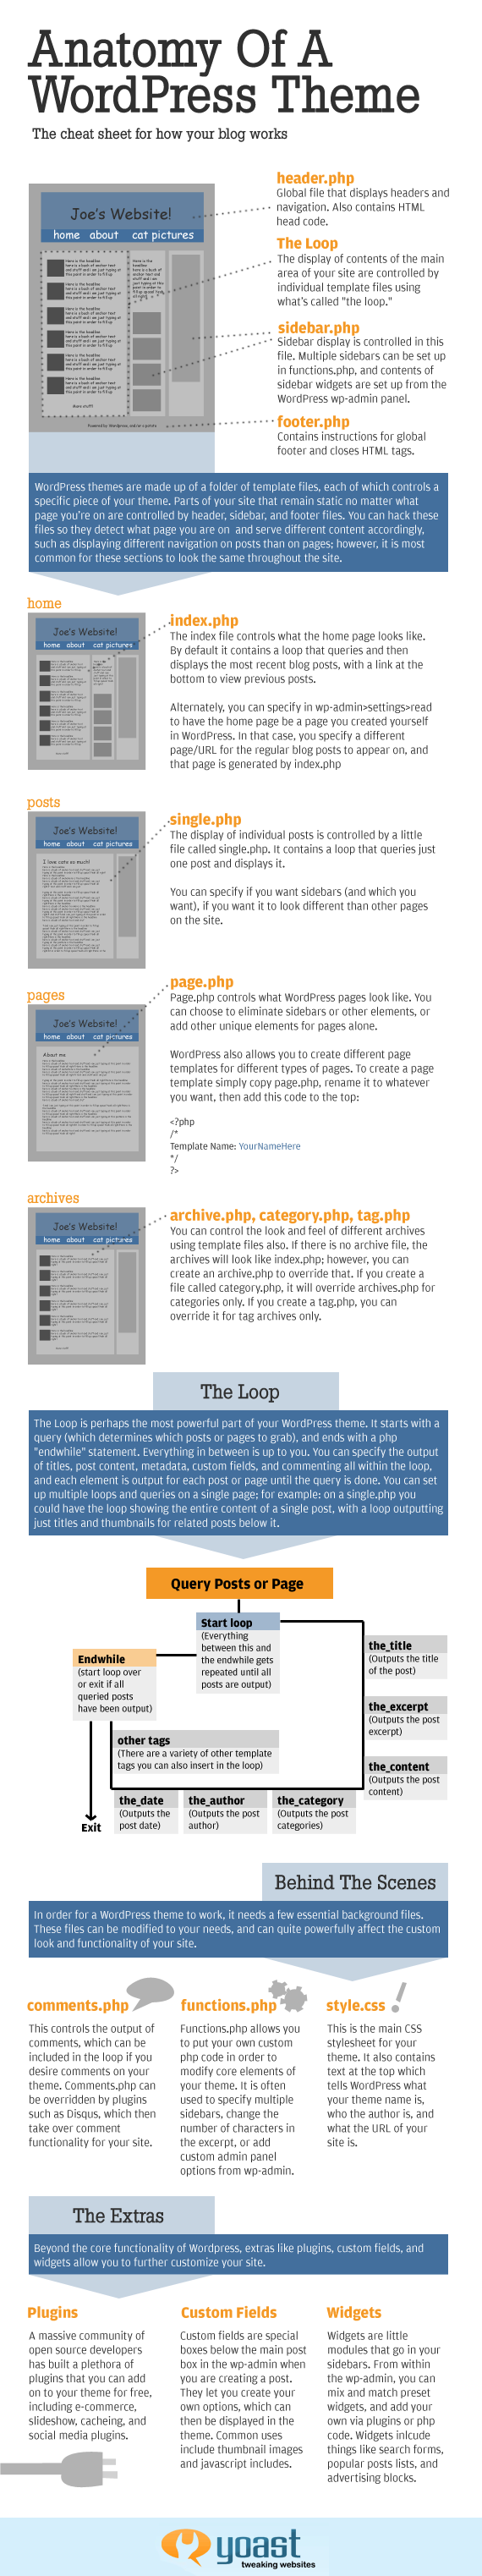 analogy of wordpress theme